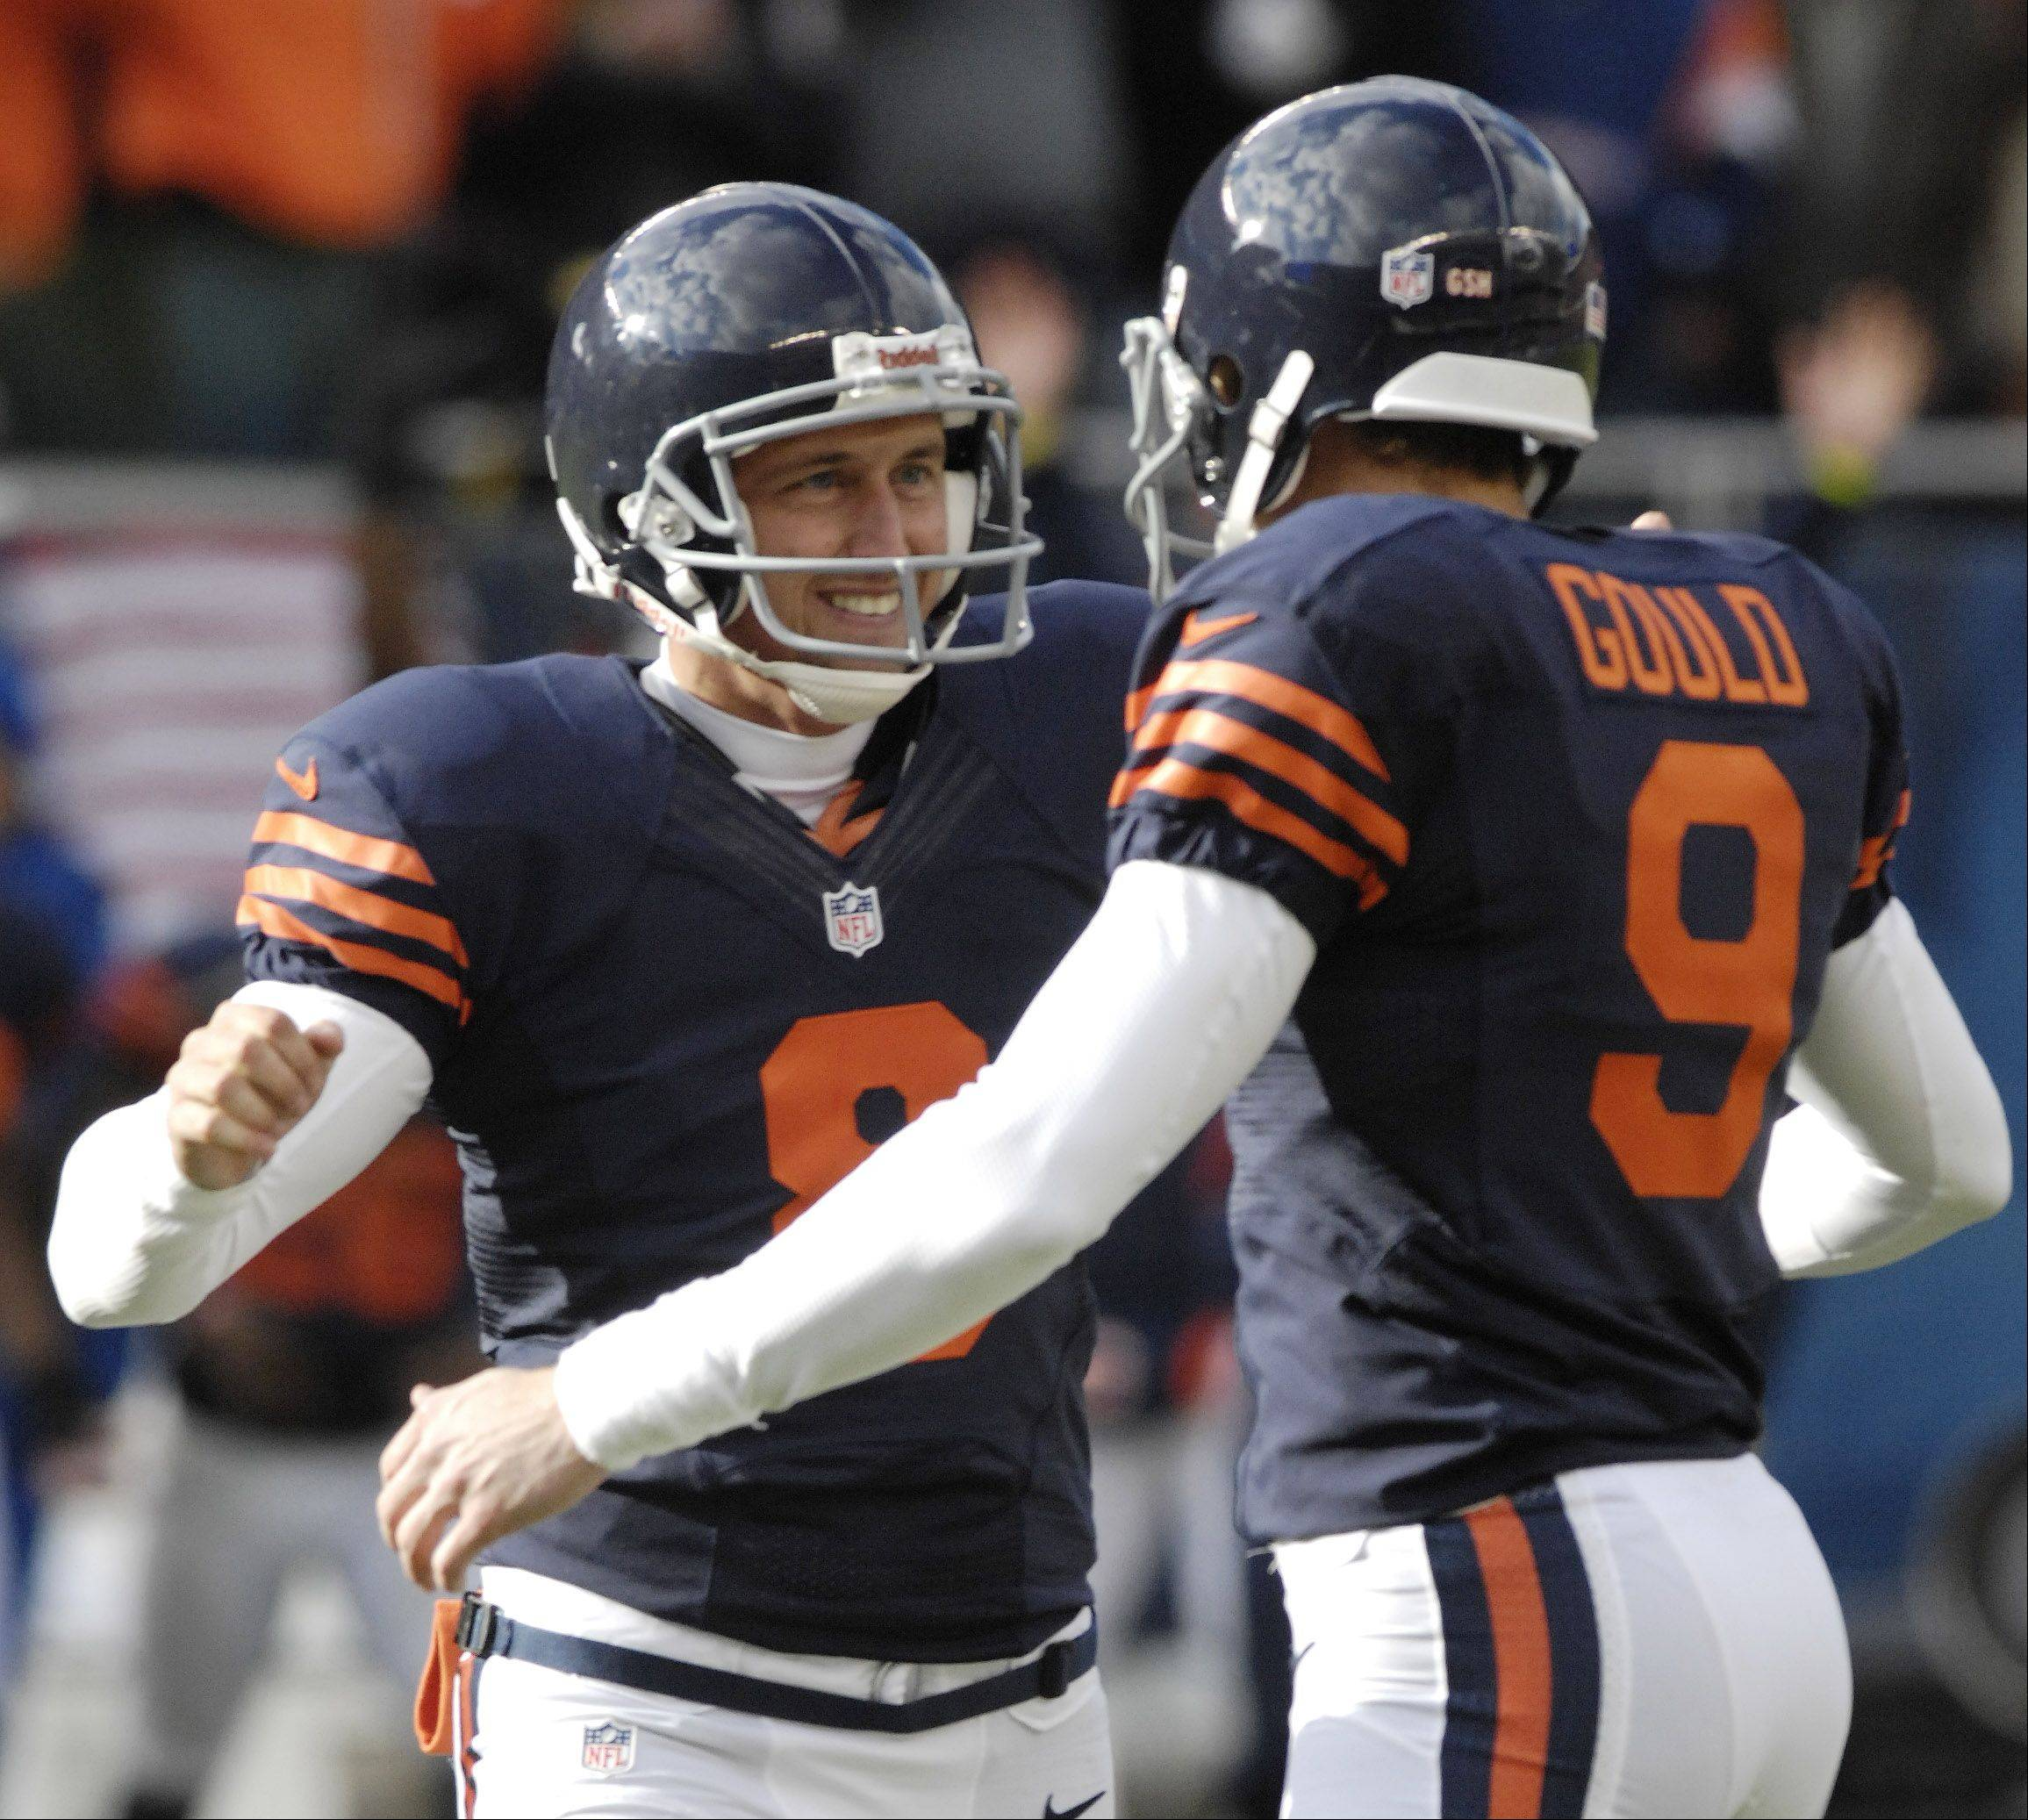 Bears kicker Robbie Gould, right, celebrates a game-winning field goal with holder Adam Podlesh.